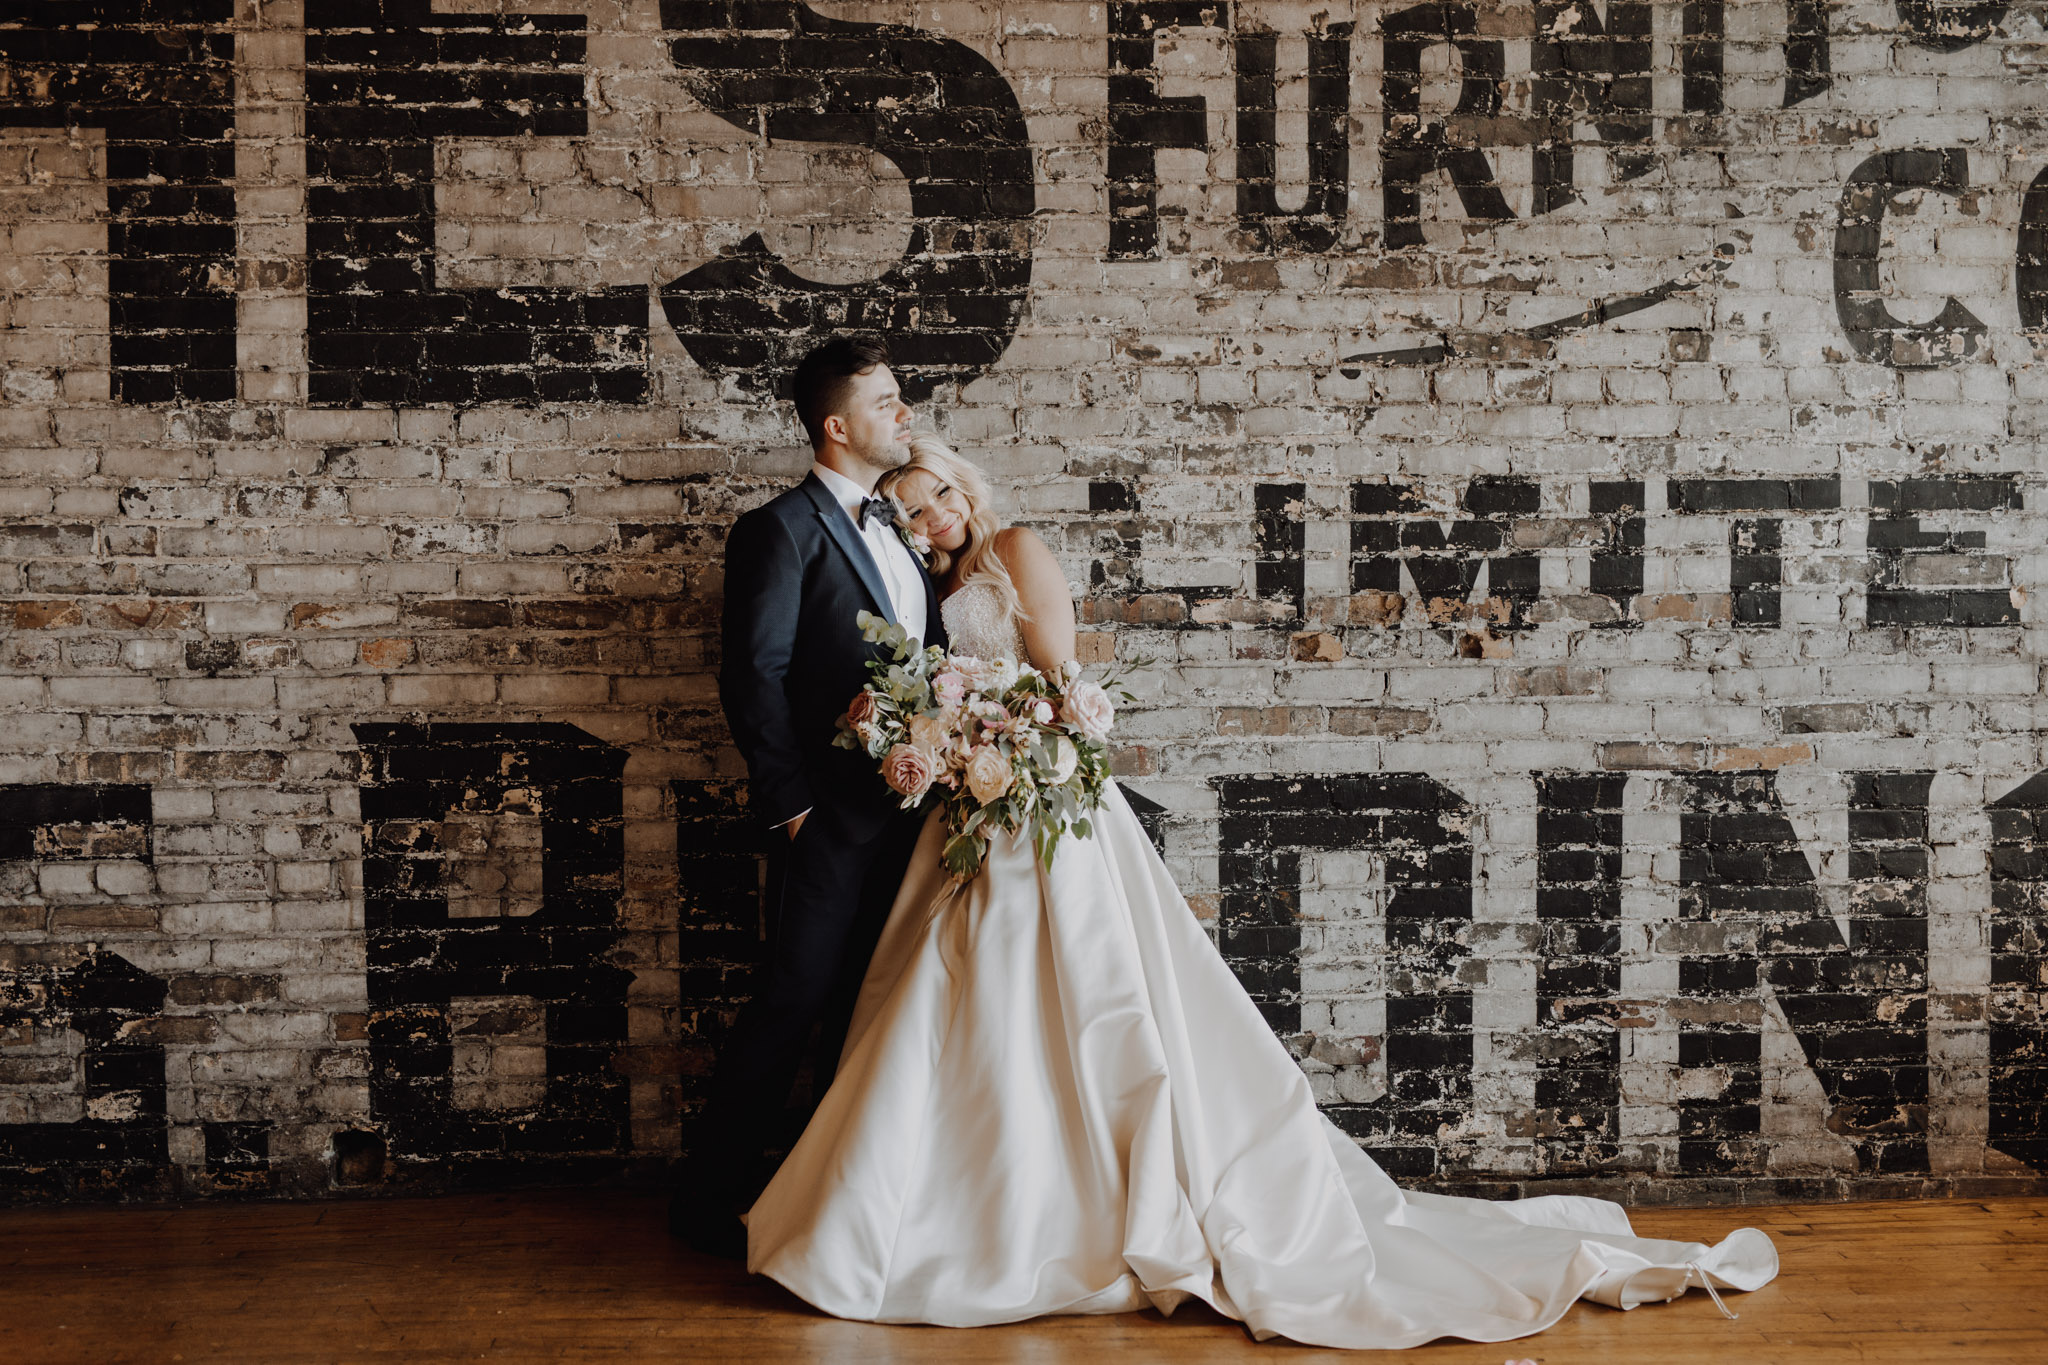 The Burroughes Wedding. Love By Lynzie. Wedding Photographer Jennifer See Studios.